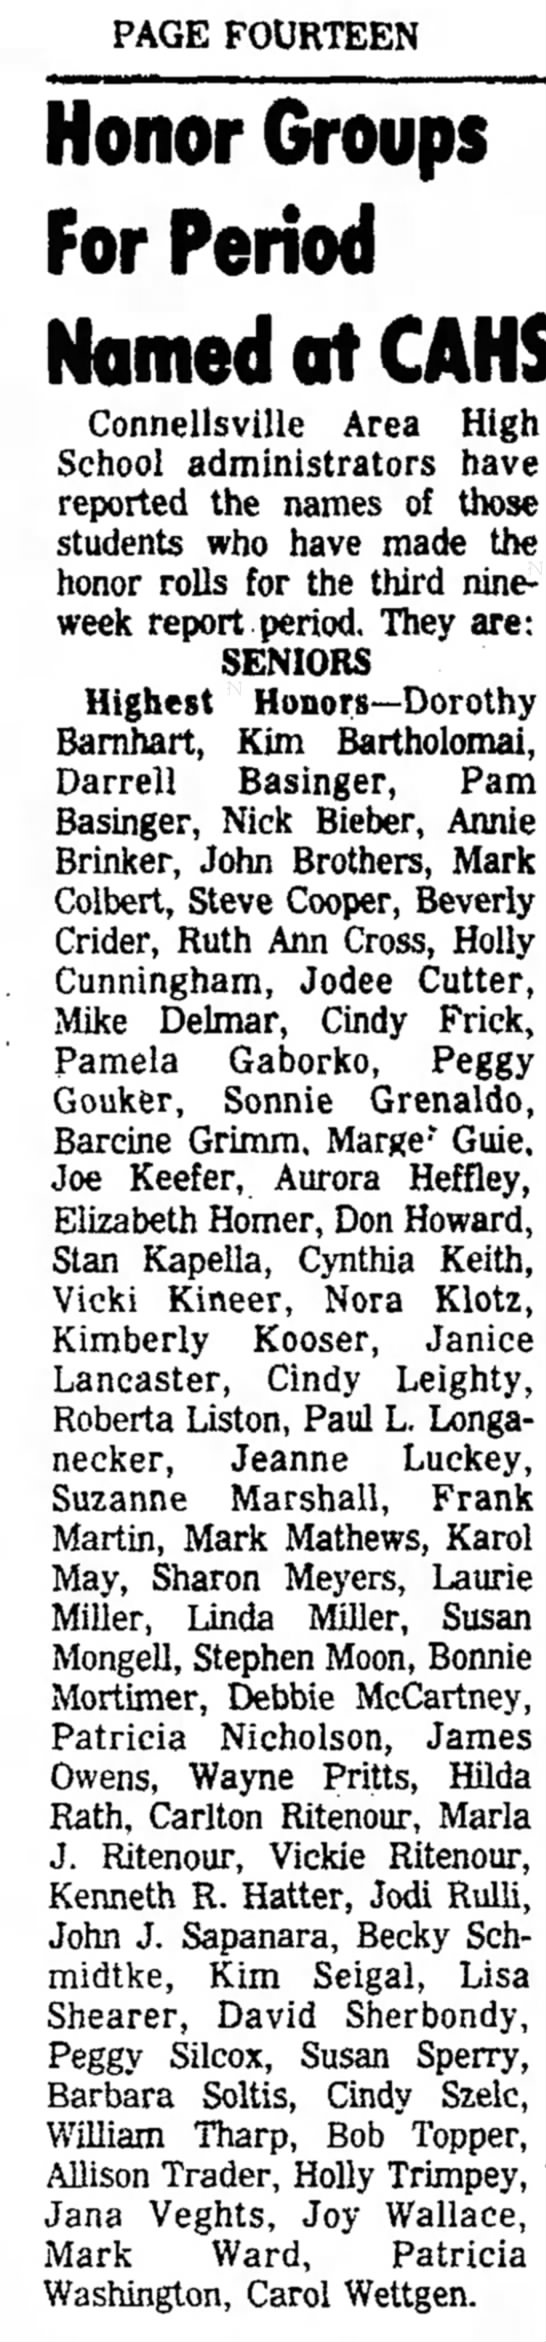 carol wettgen honor roll page 16 the daily courier april 21 1976 -